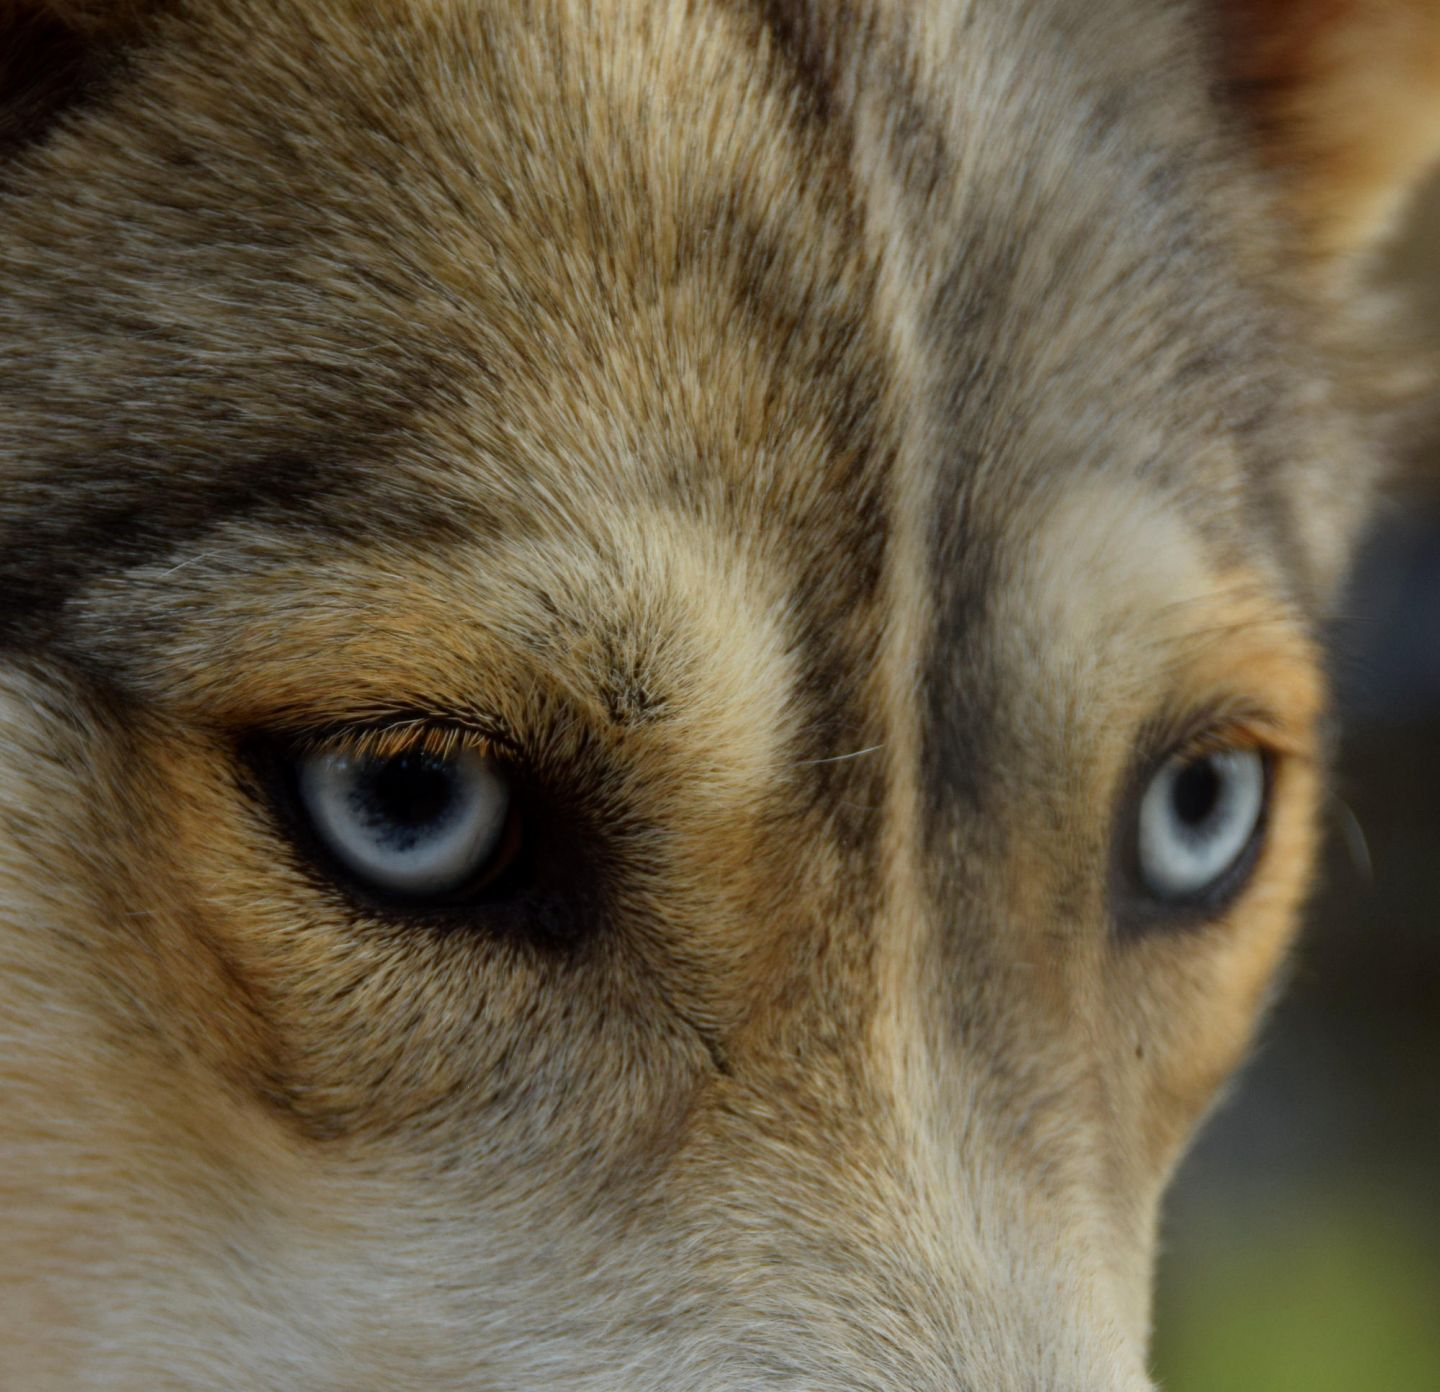 Husky close-up